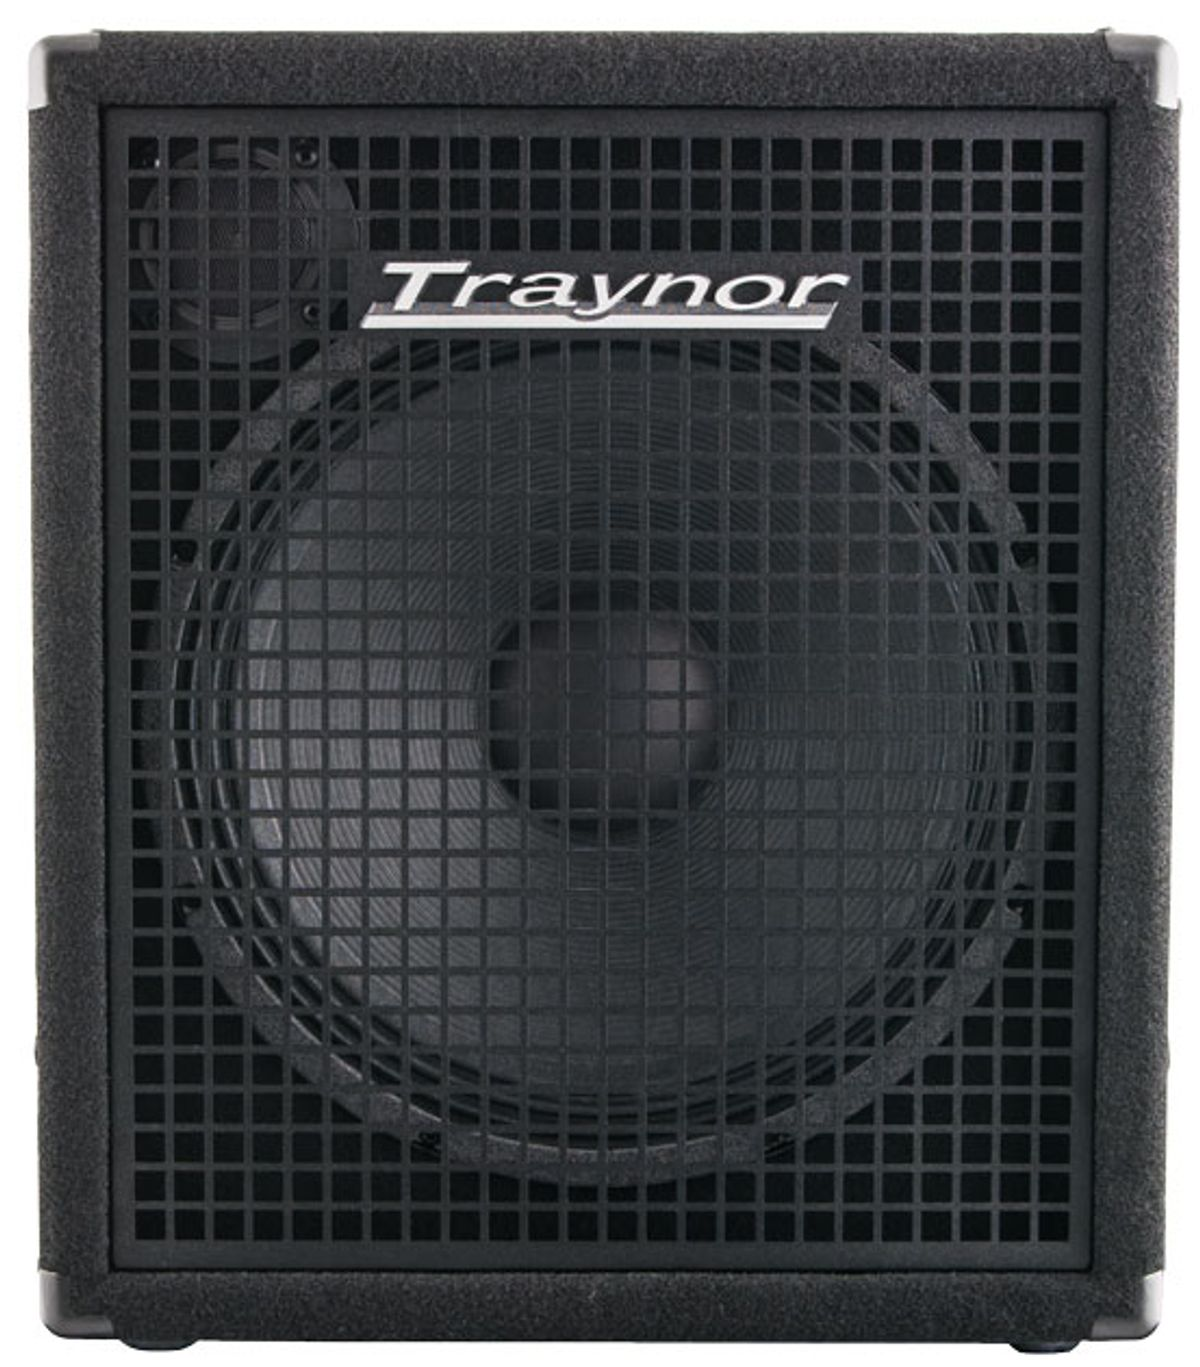 Traynor SB115 Review